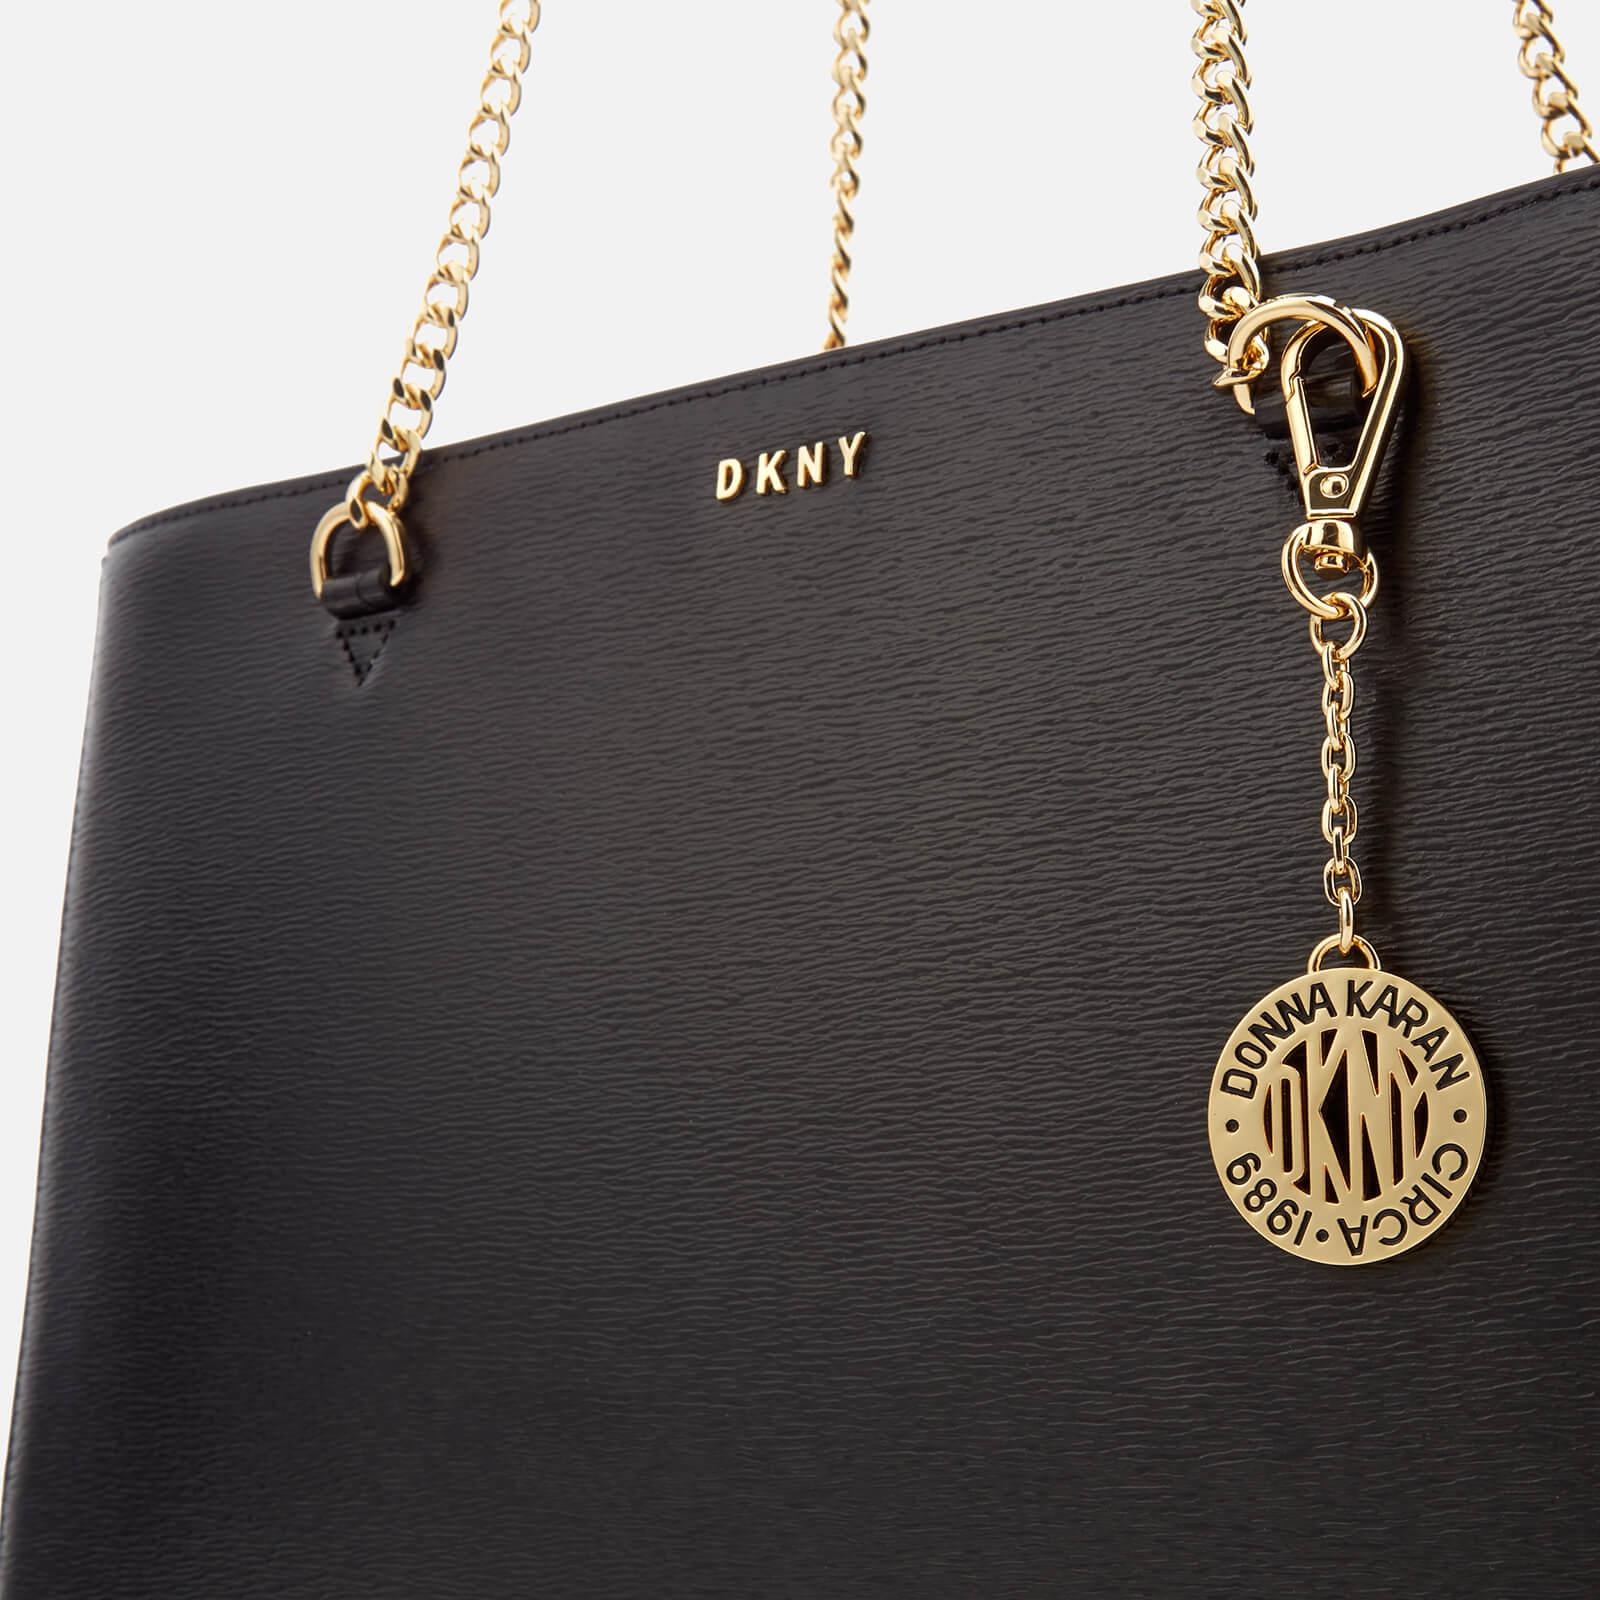 DKNY Leather Women's Bryant Large Shopper Tote Bag in Black